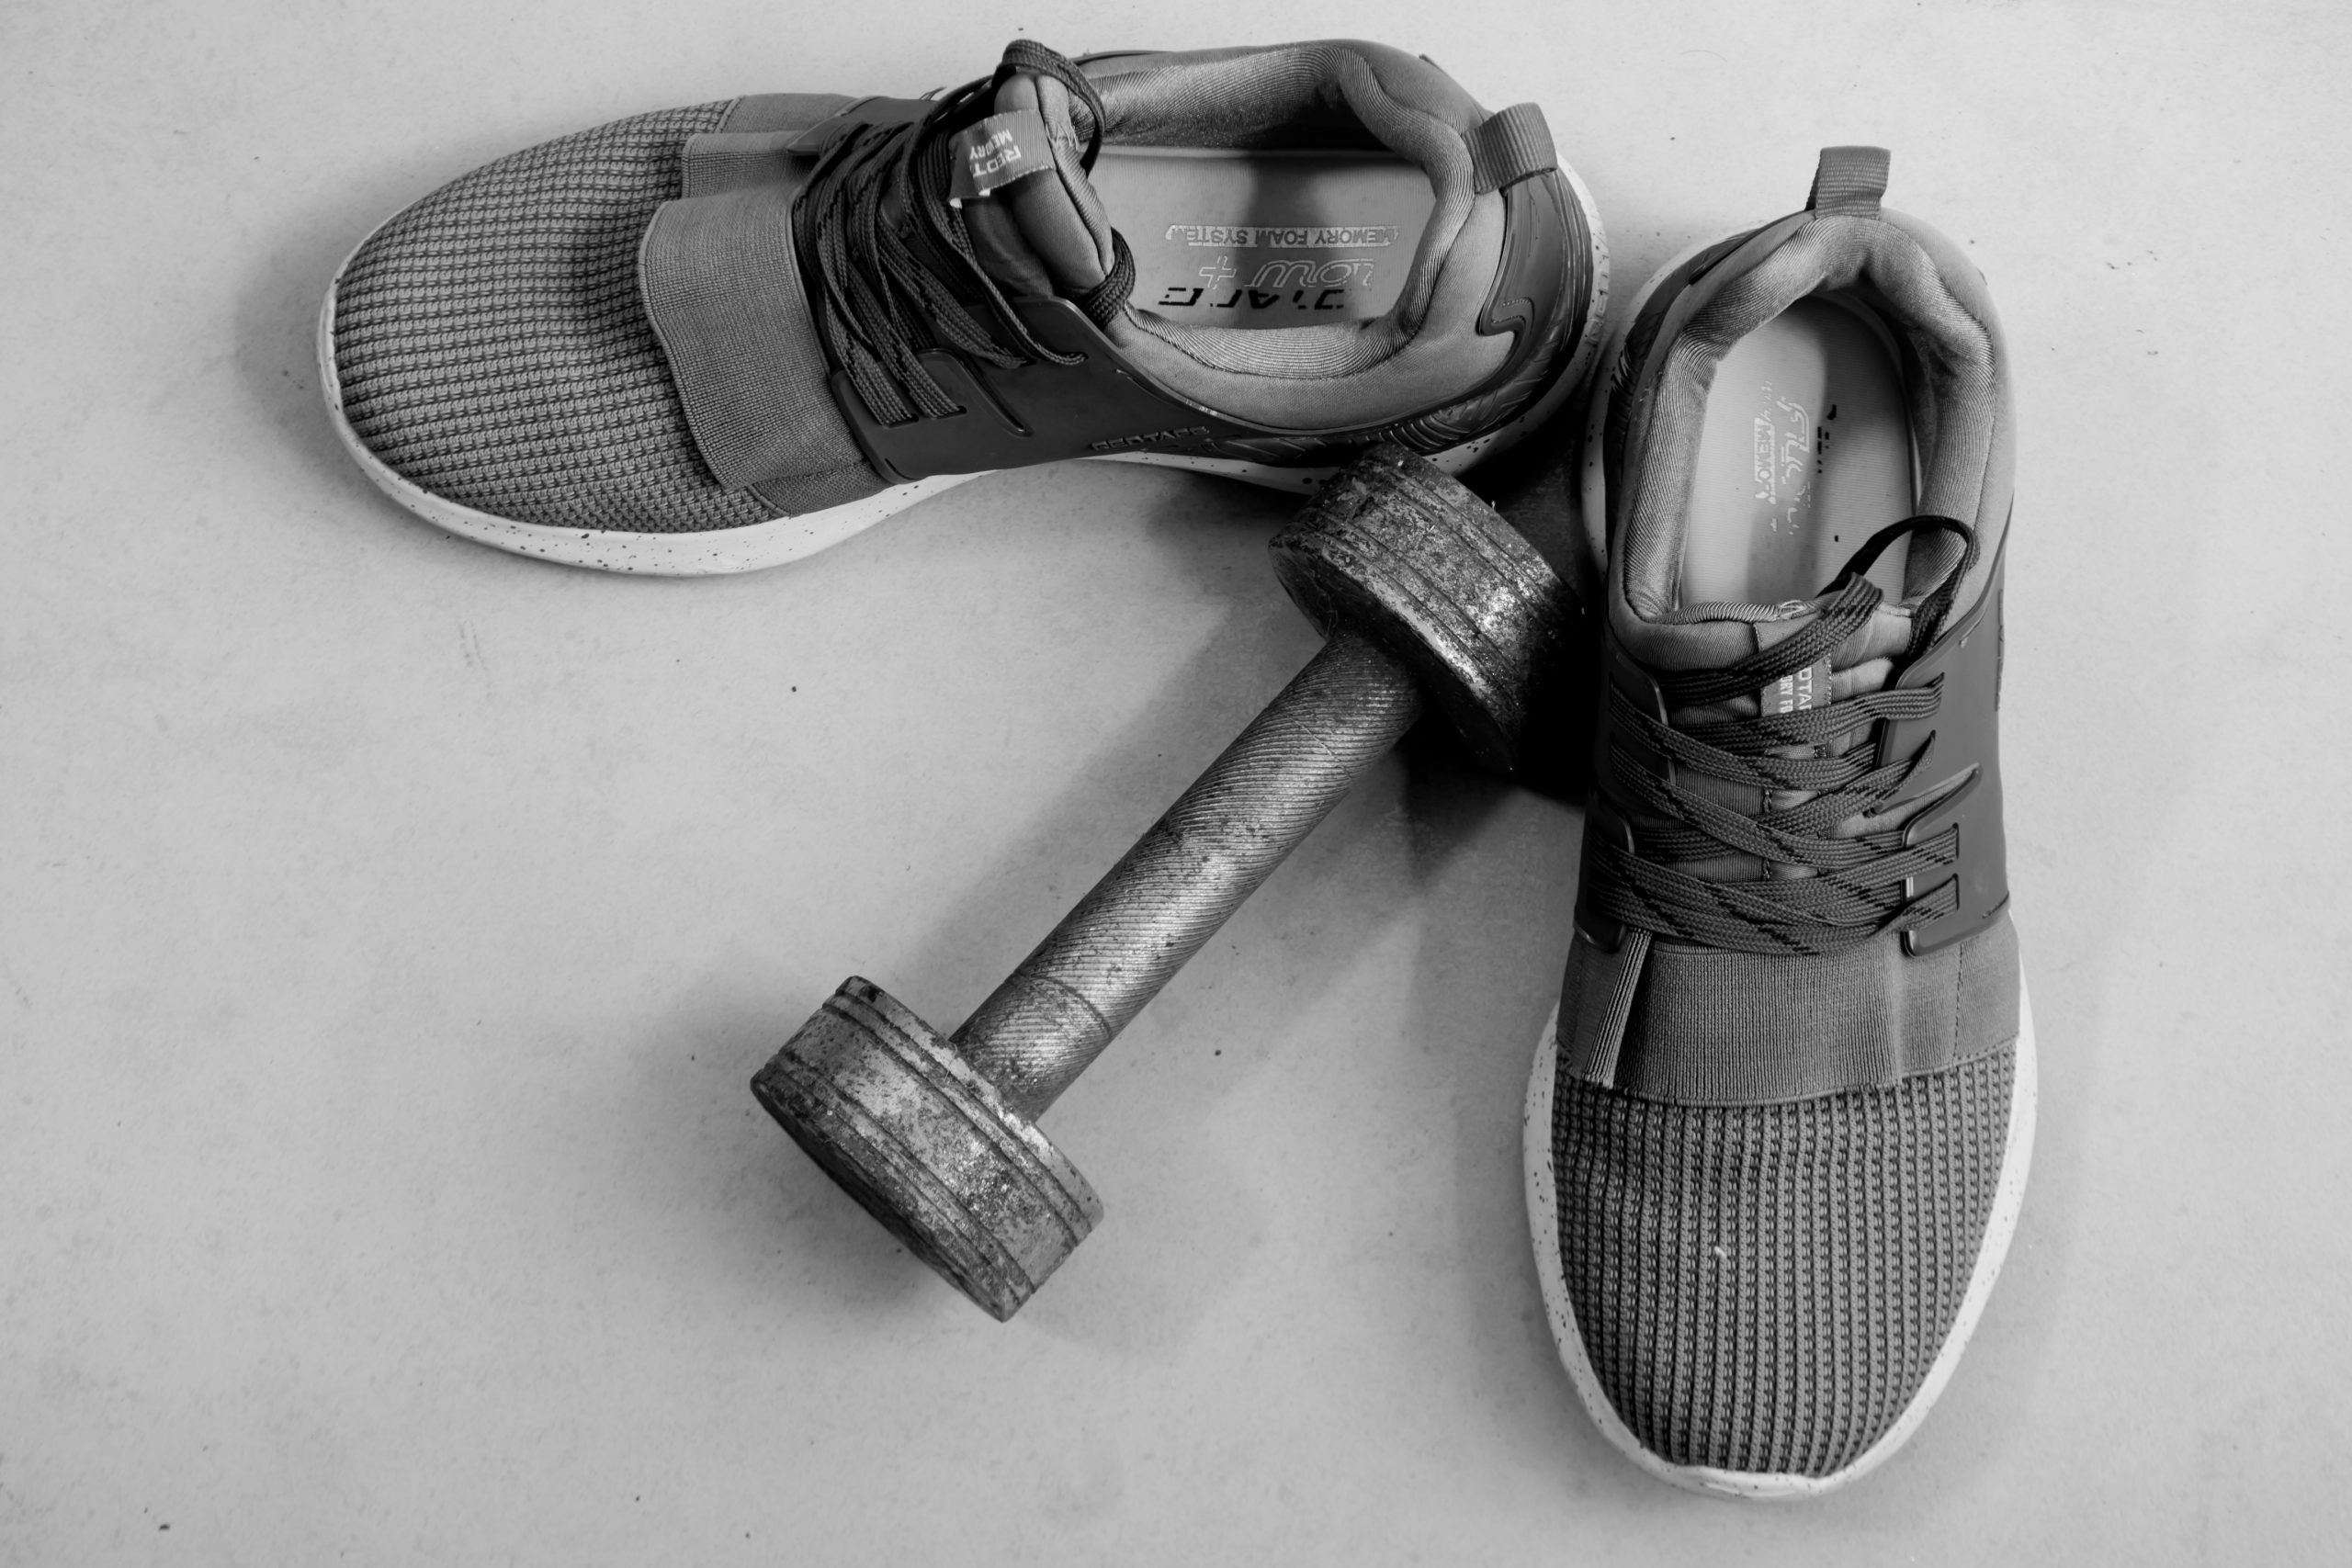 Dumbbell and workout shoes